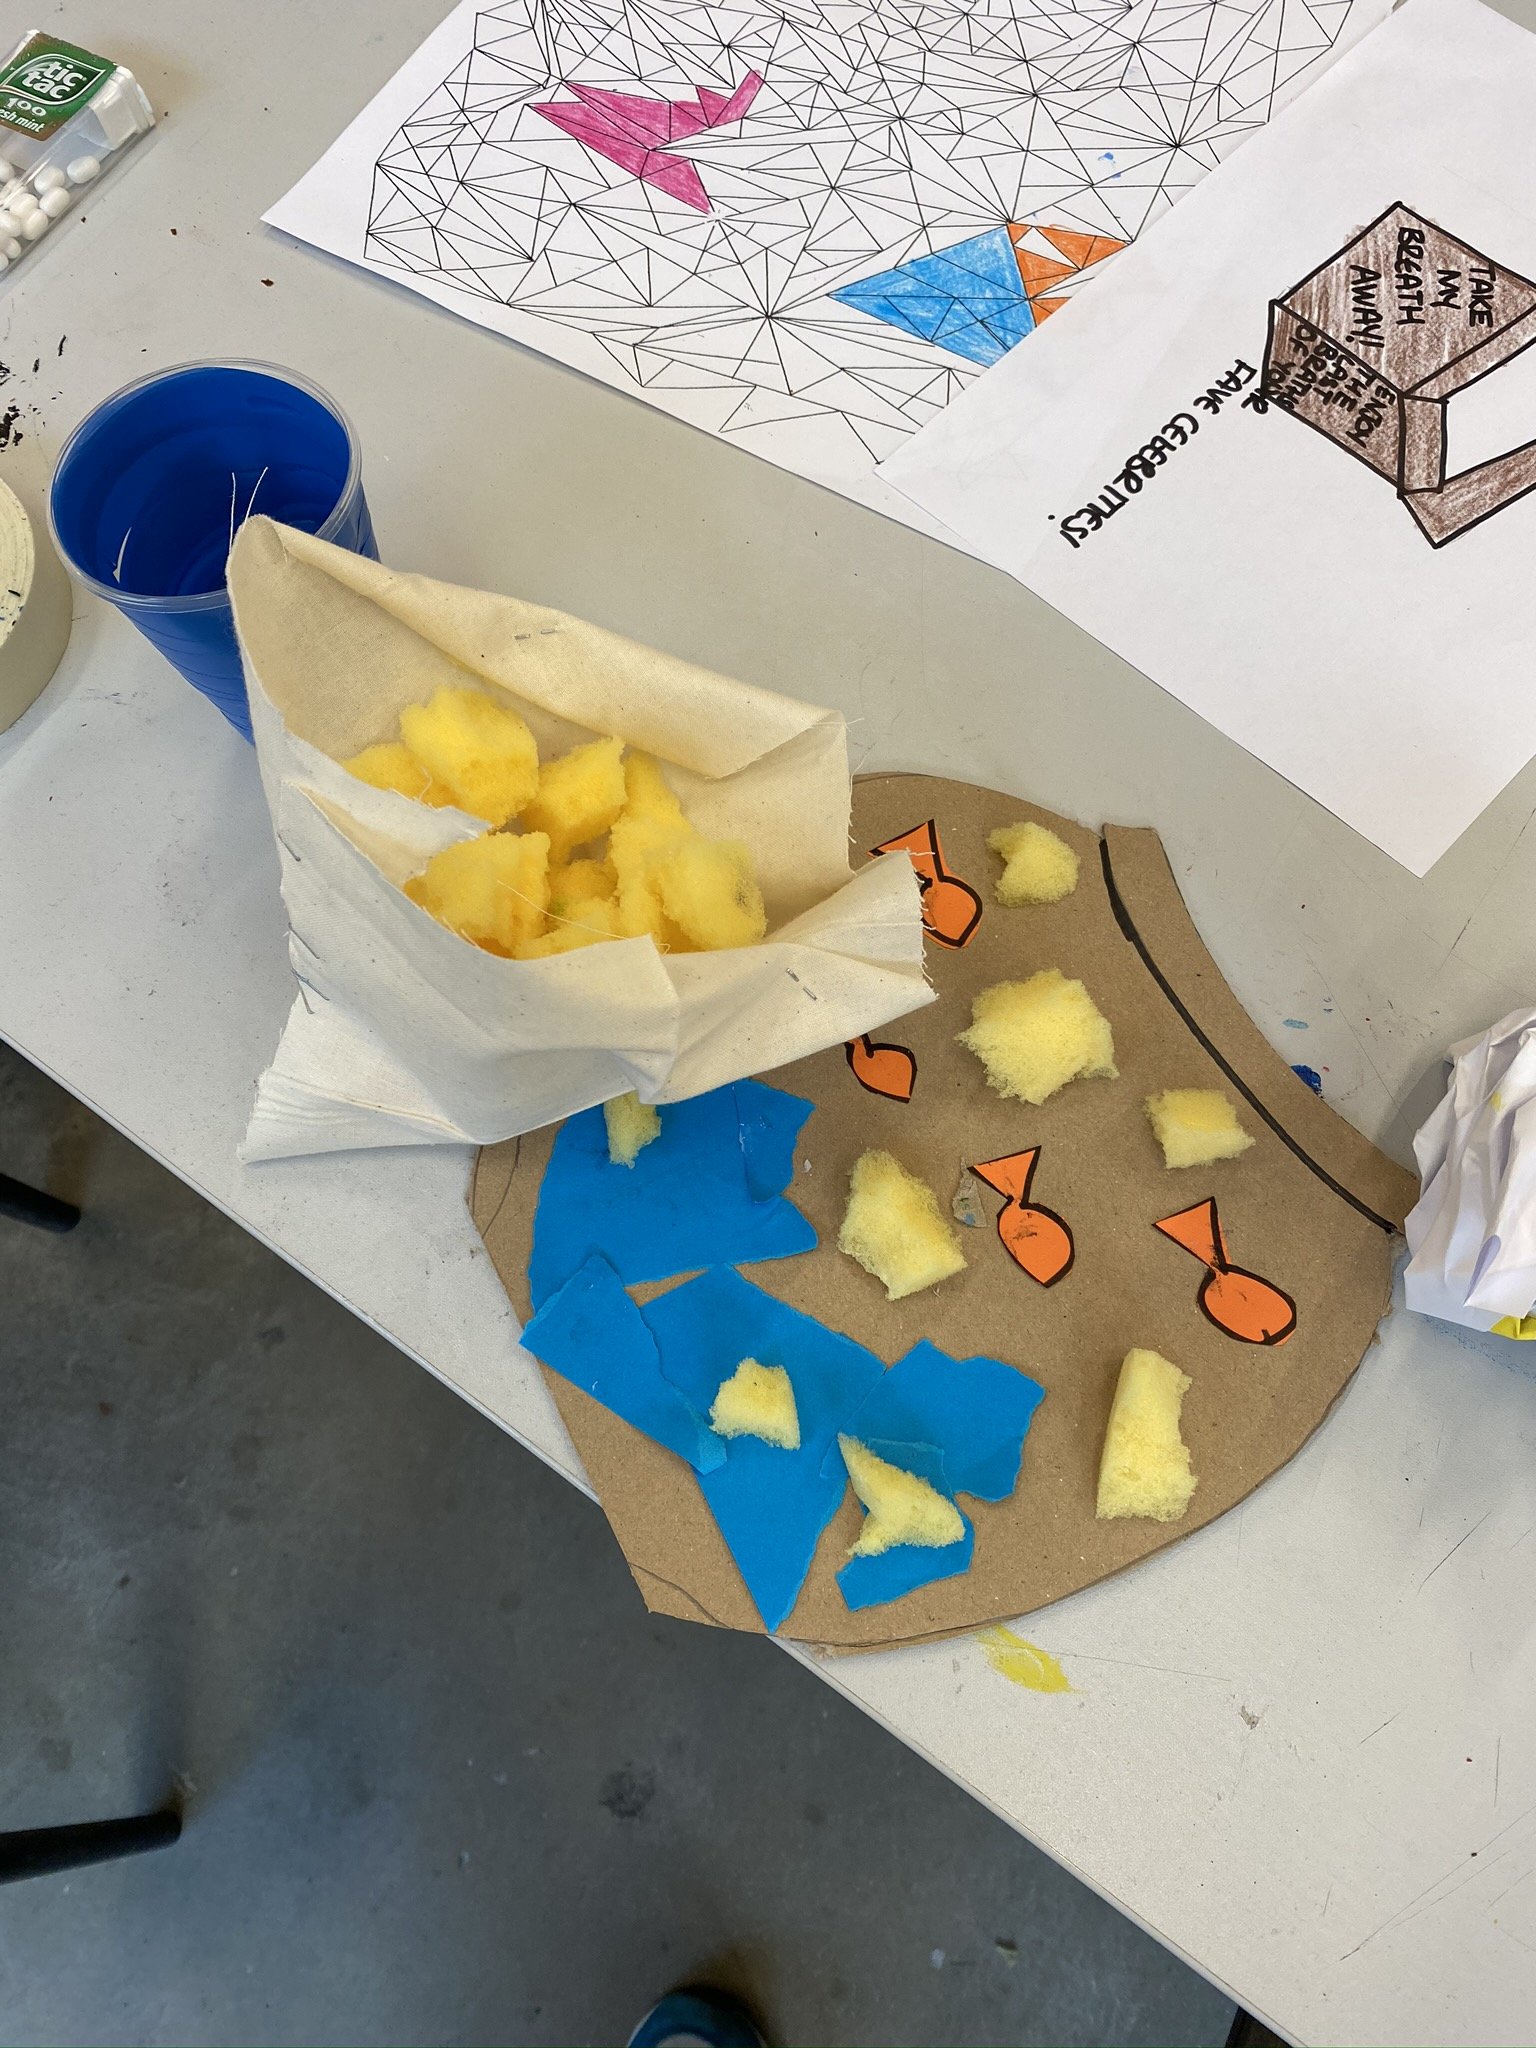 Cardboard and sponge on a table in the fashion of a fish bowl and a cone of chips